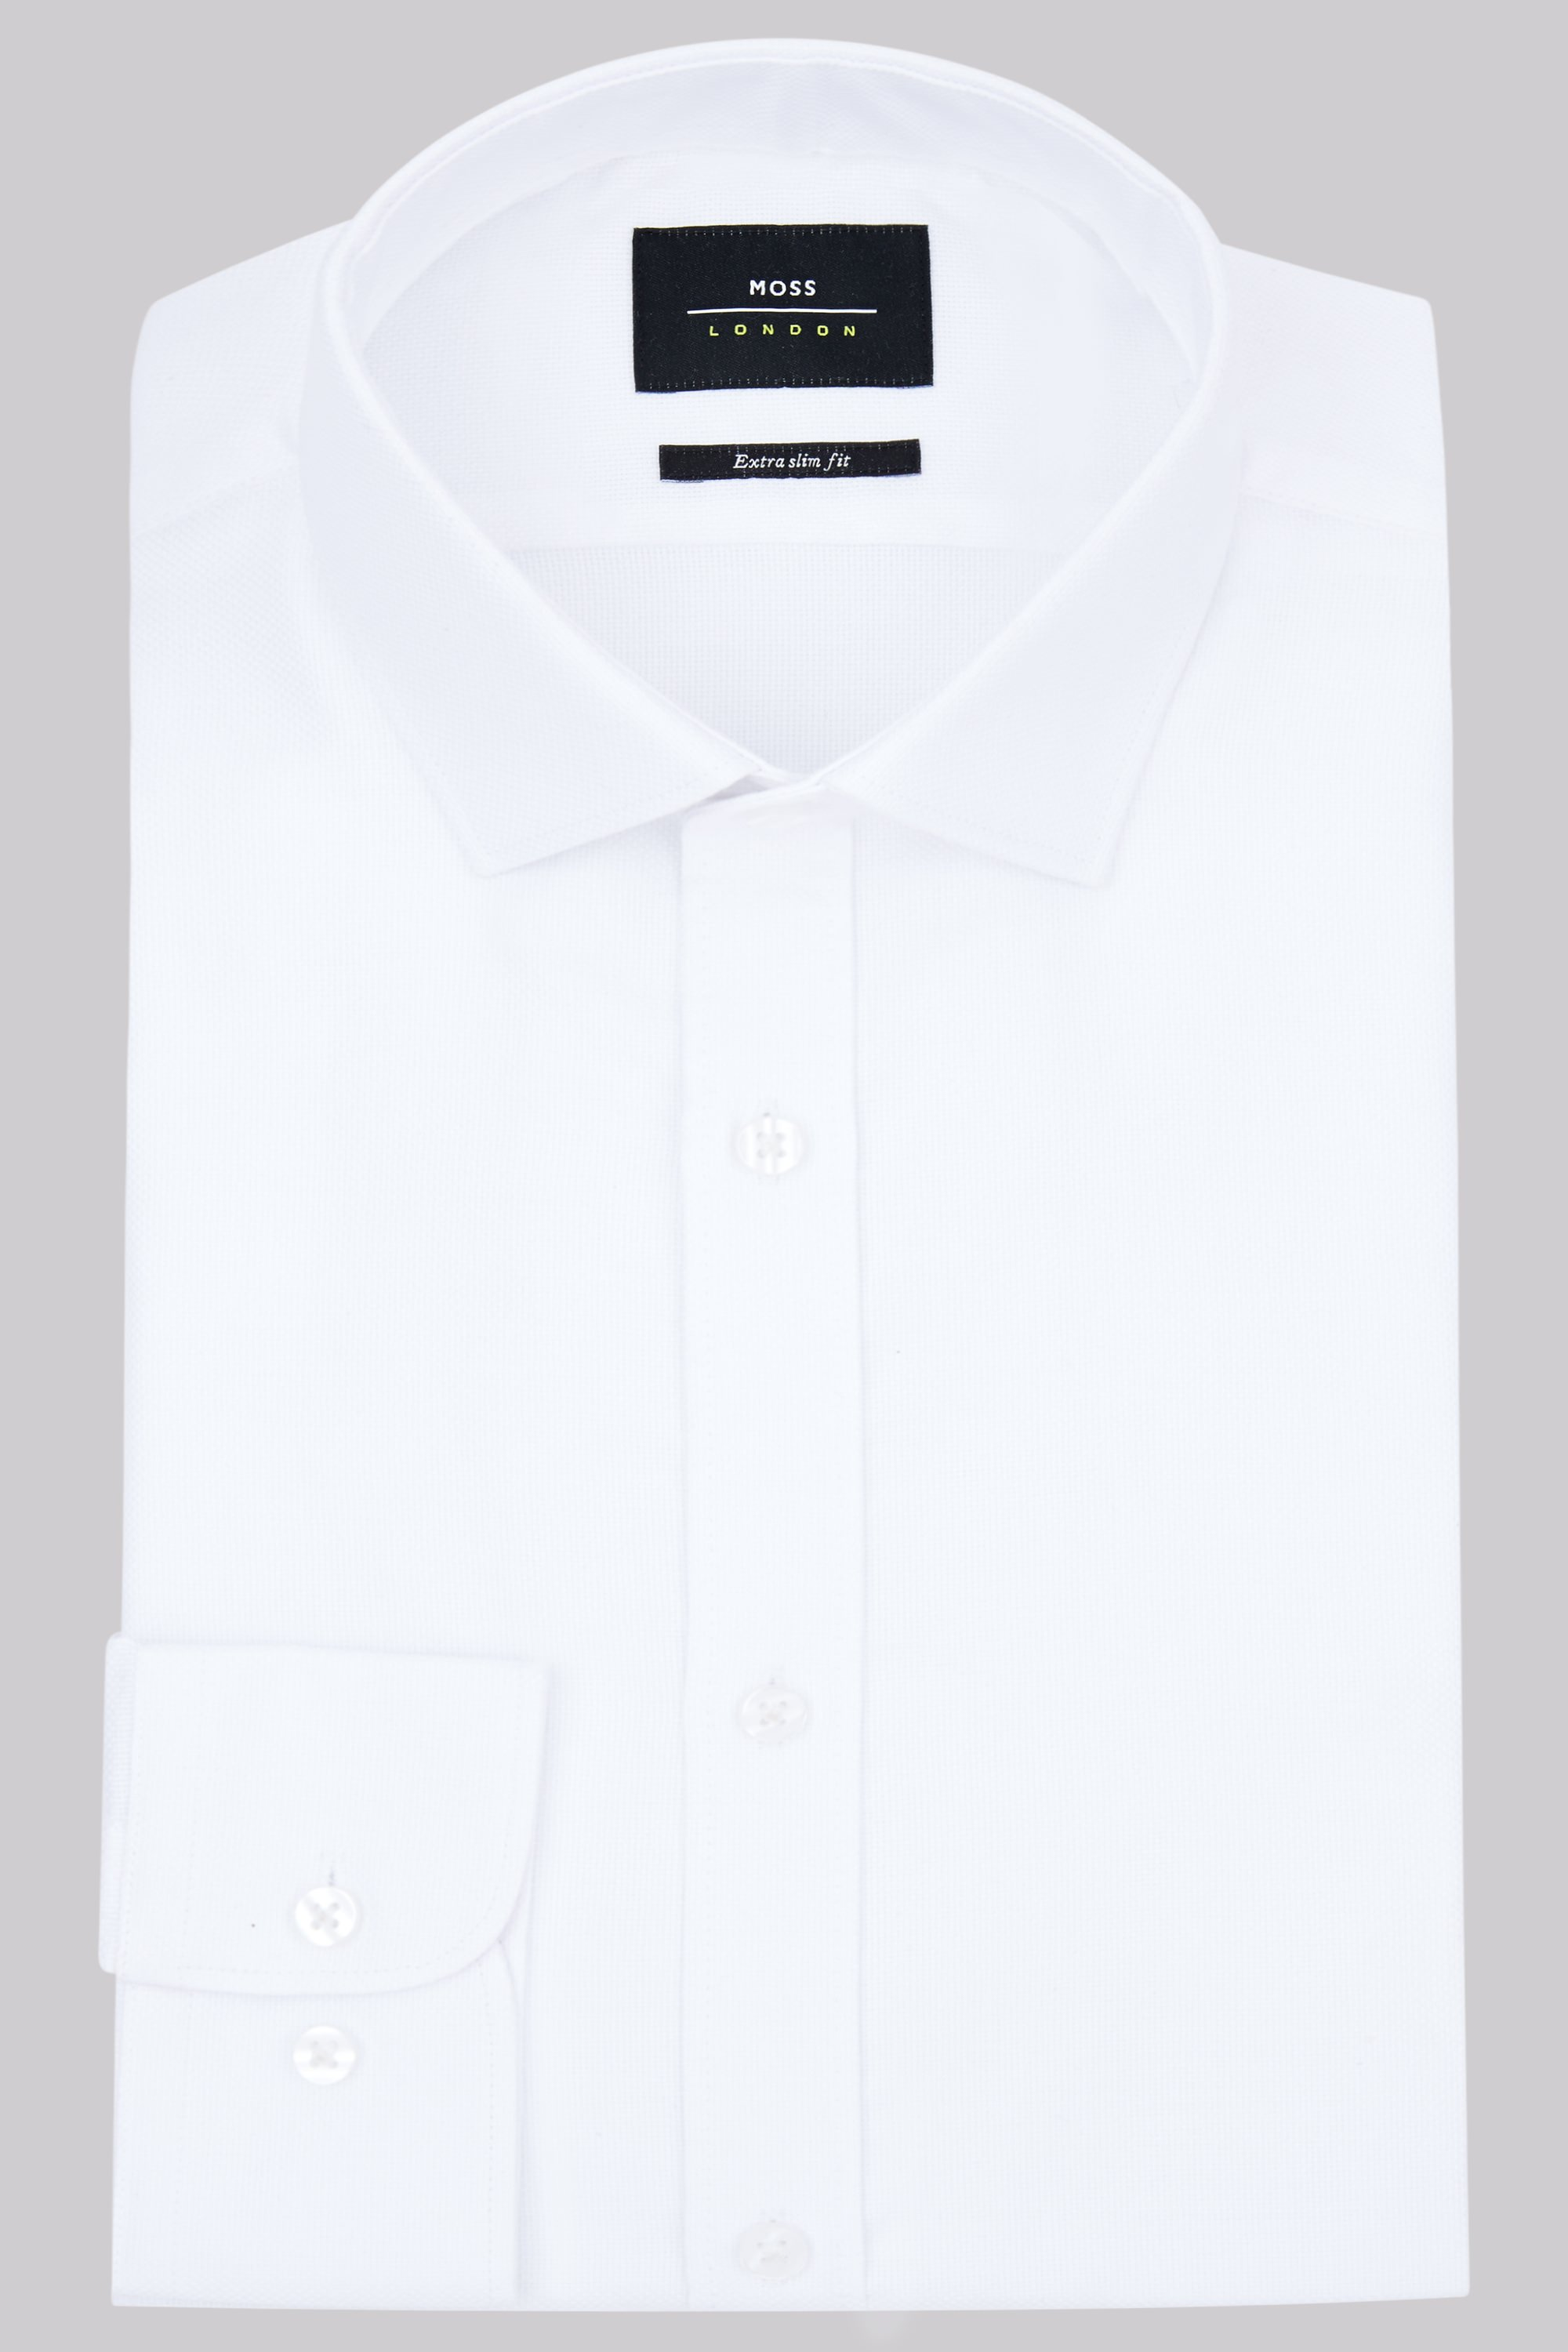 Moss London Premium Extra Slim Fit White Single Cuff Oxford Texture Shirt